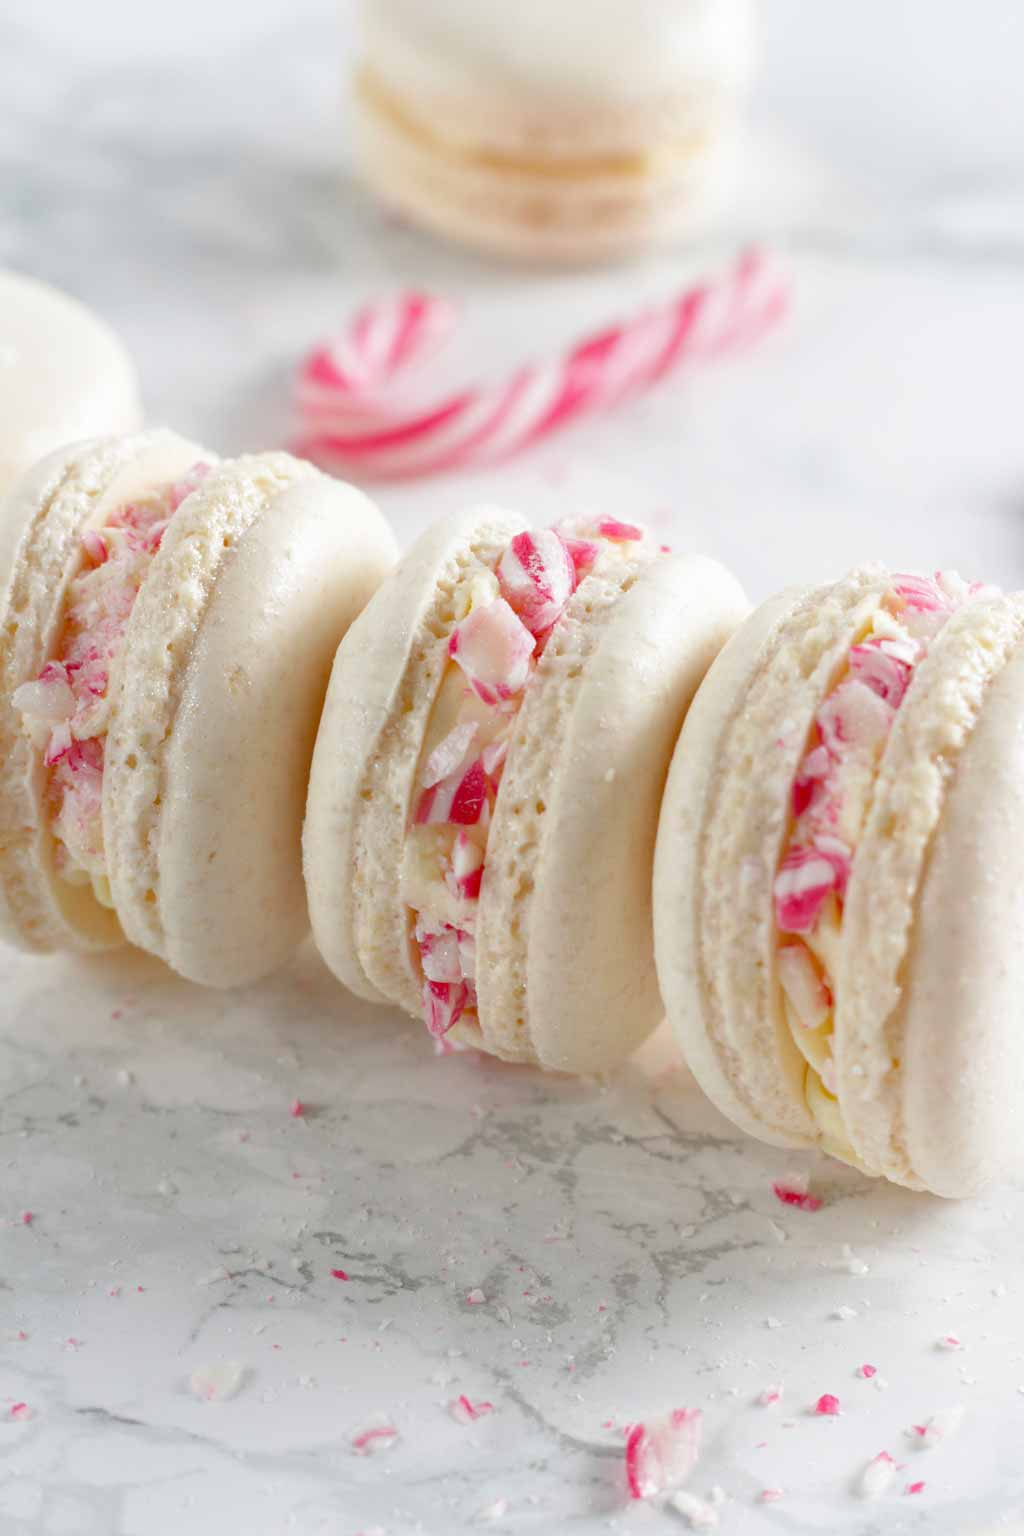 3 Macarons Lying On Their Sides